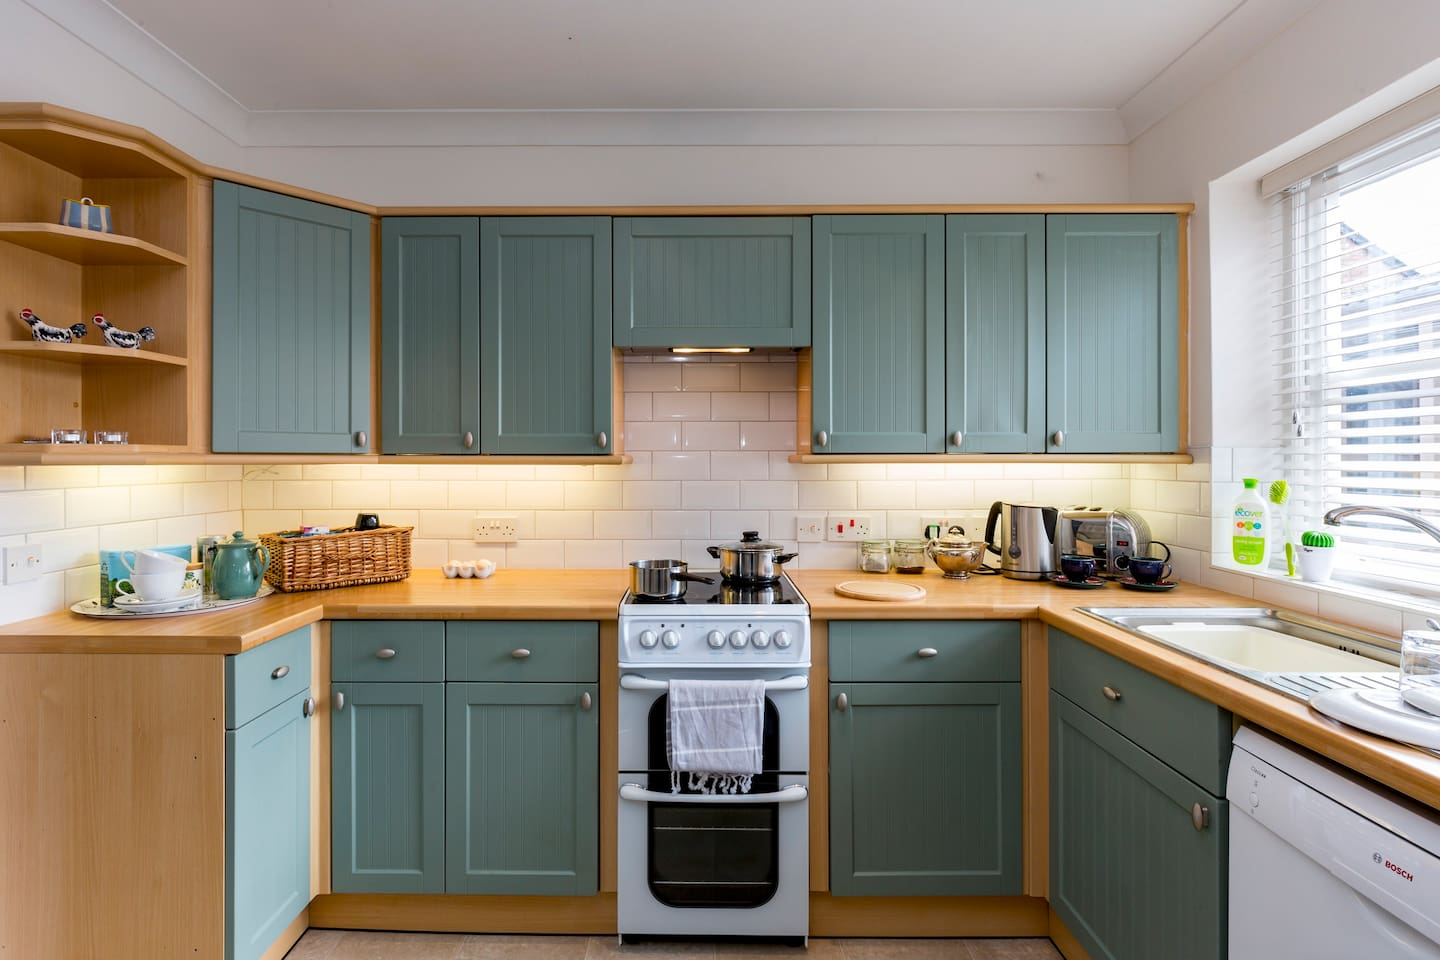 Kitchen with cooker, fridge and dishwasher. Everything you need to cook cheese on toast or even a roast dinner!